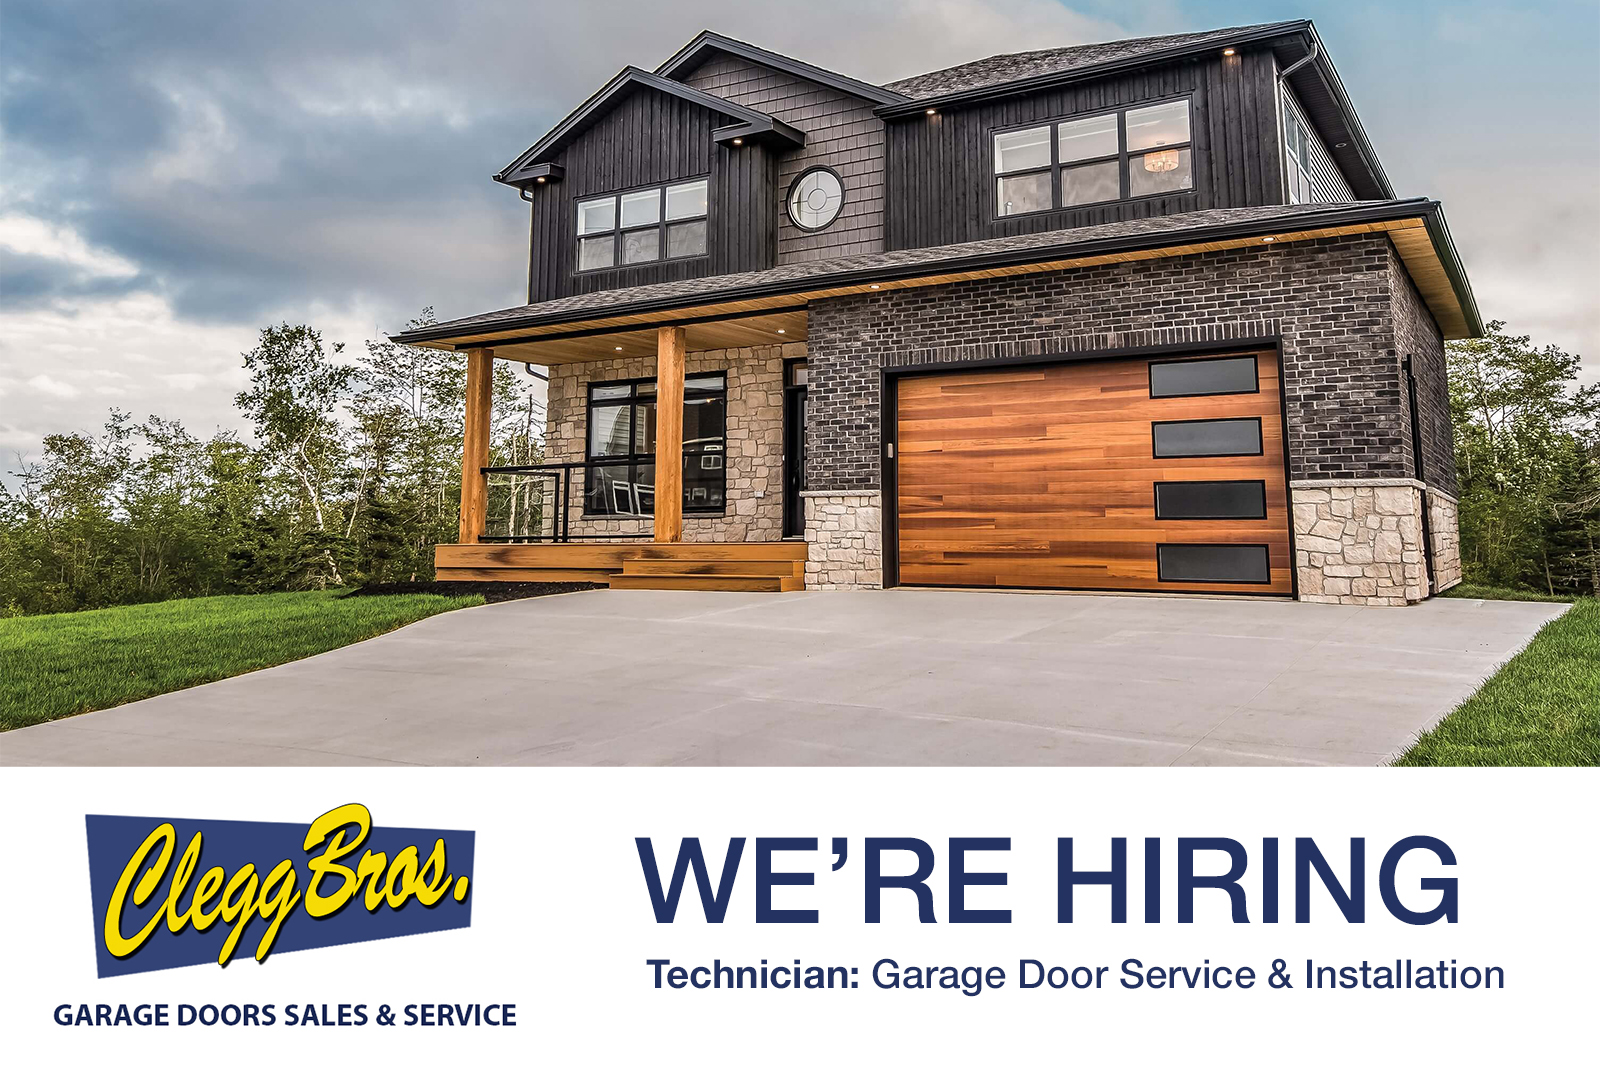 Clegg Brothers - Commercial & Residential Garage Doors - Hudson Valley